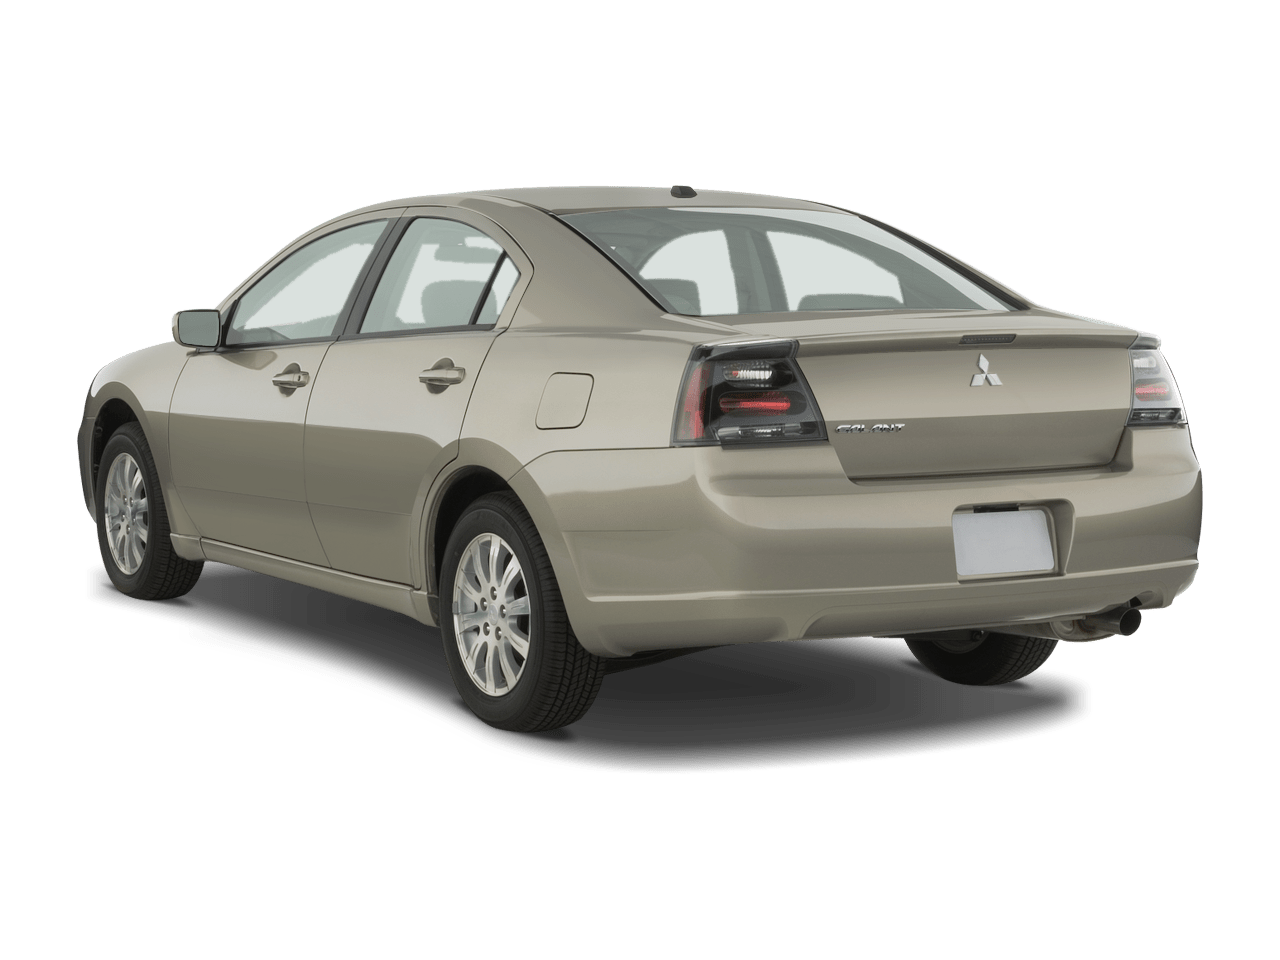 2008 Mitsubishi Galant Reviews Research Galant Prices